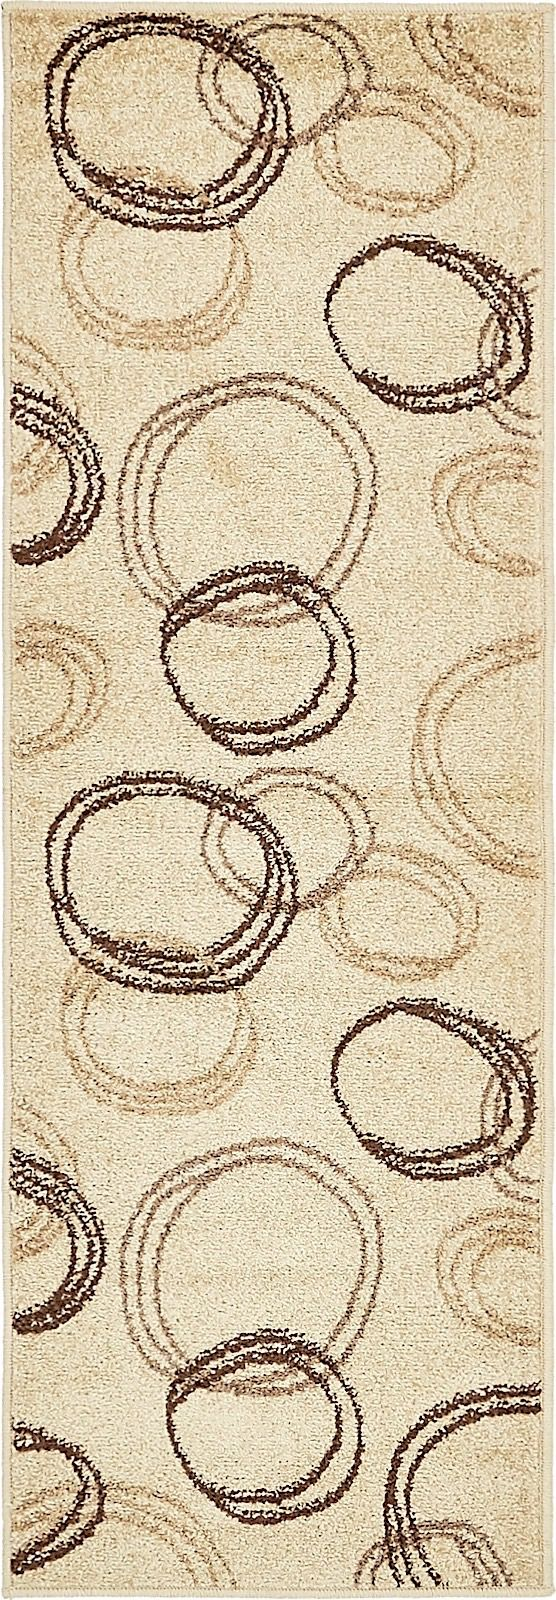 rugpal harvest contemporary area rug collection